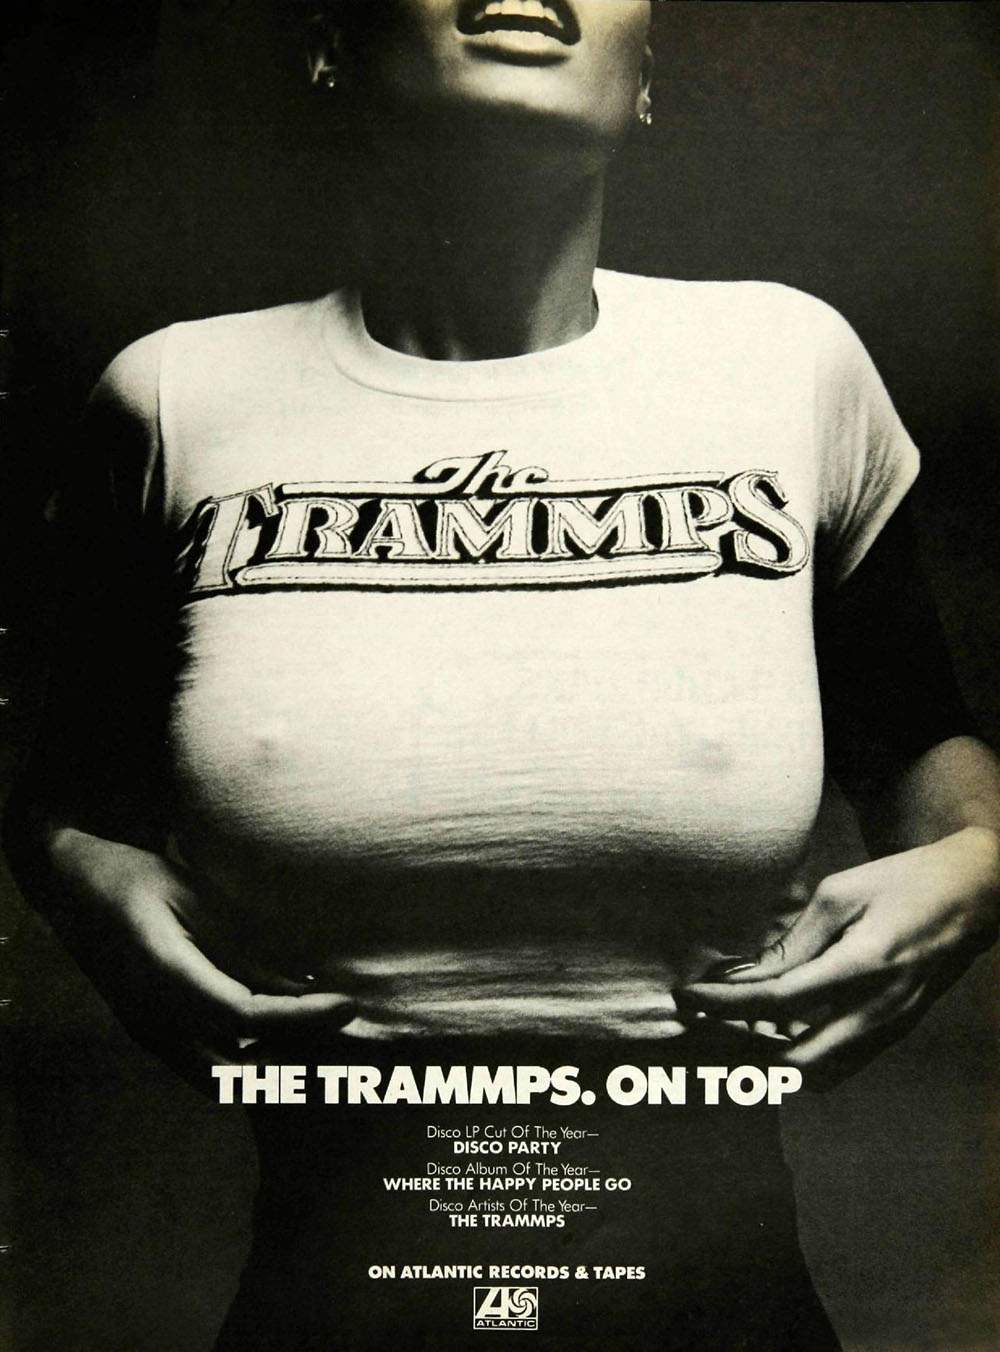 The Trammps On Top